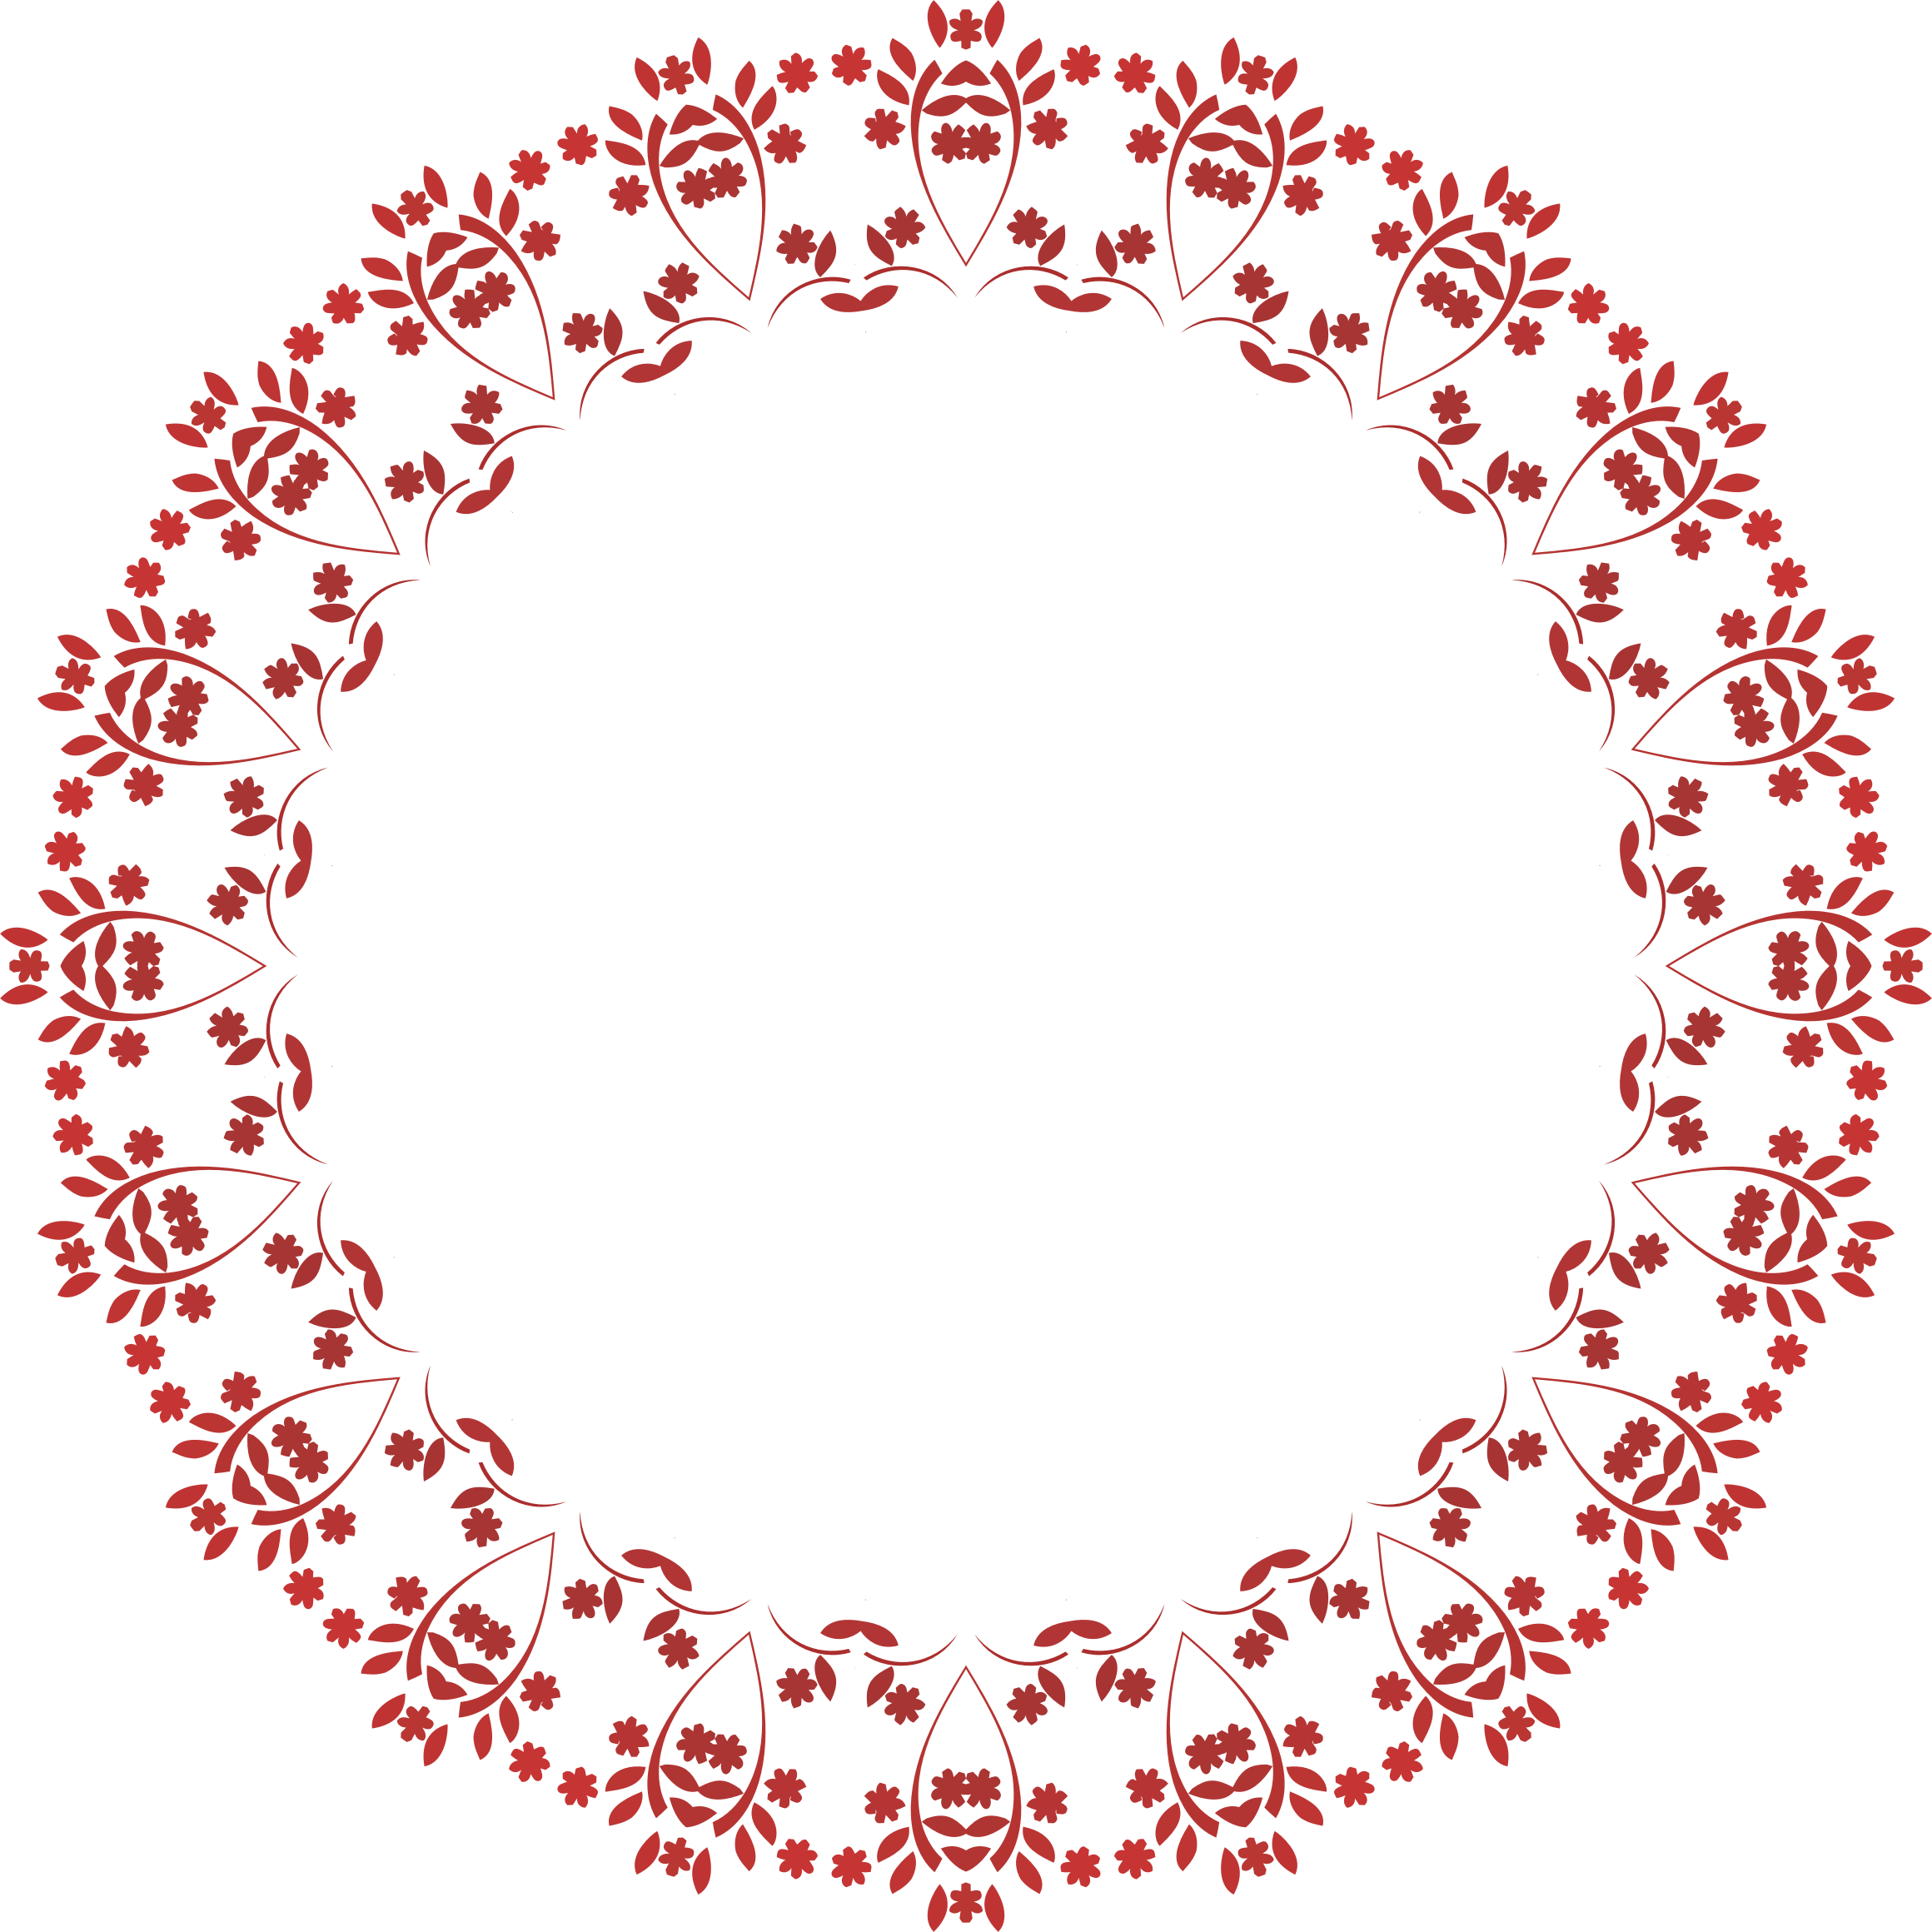 Red circle frame png. Floral icons free and